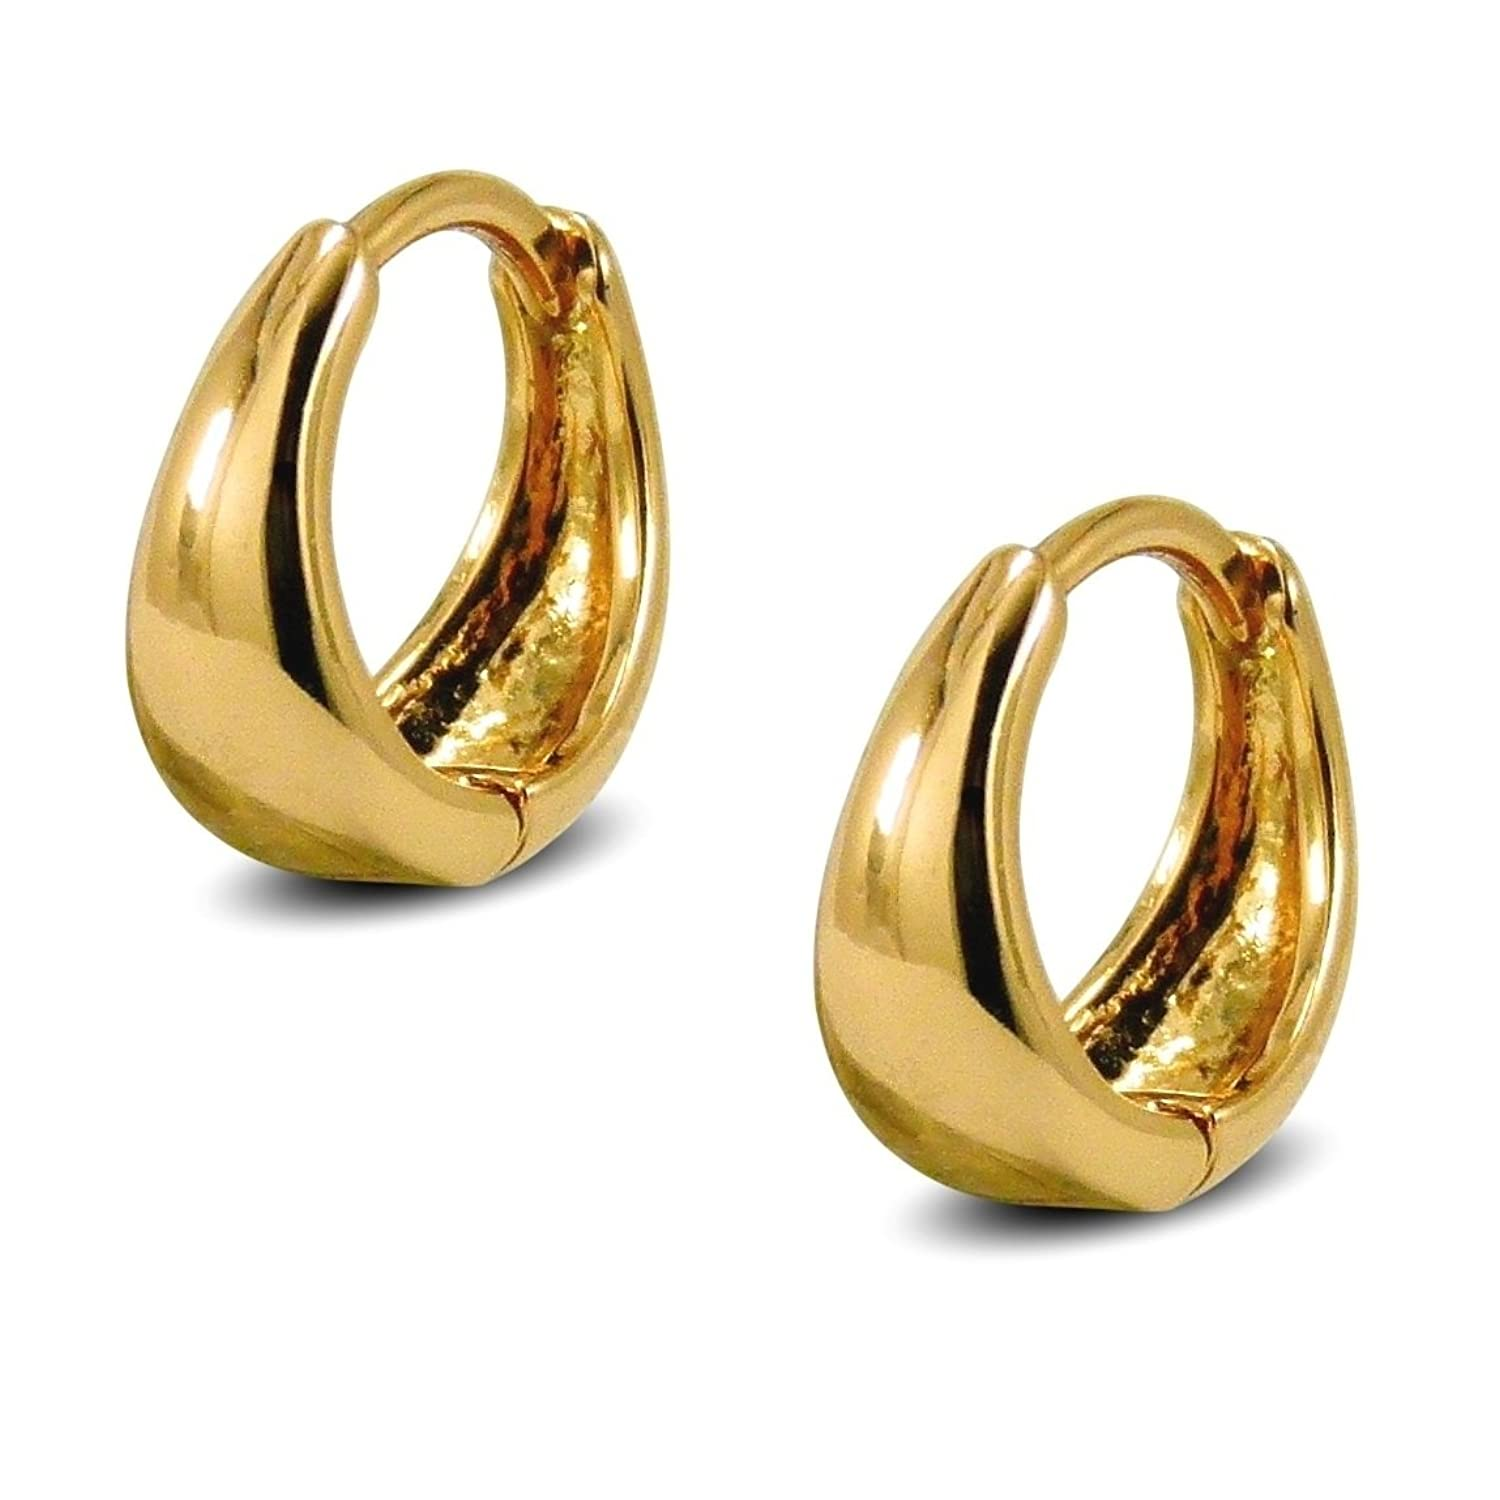 Small Tapered Hoop Earrings Womens 9ct Gold Filled Small Huggie ...